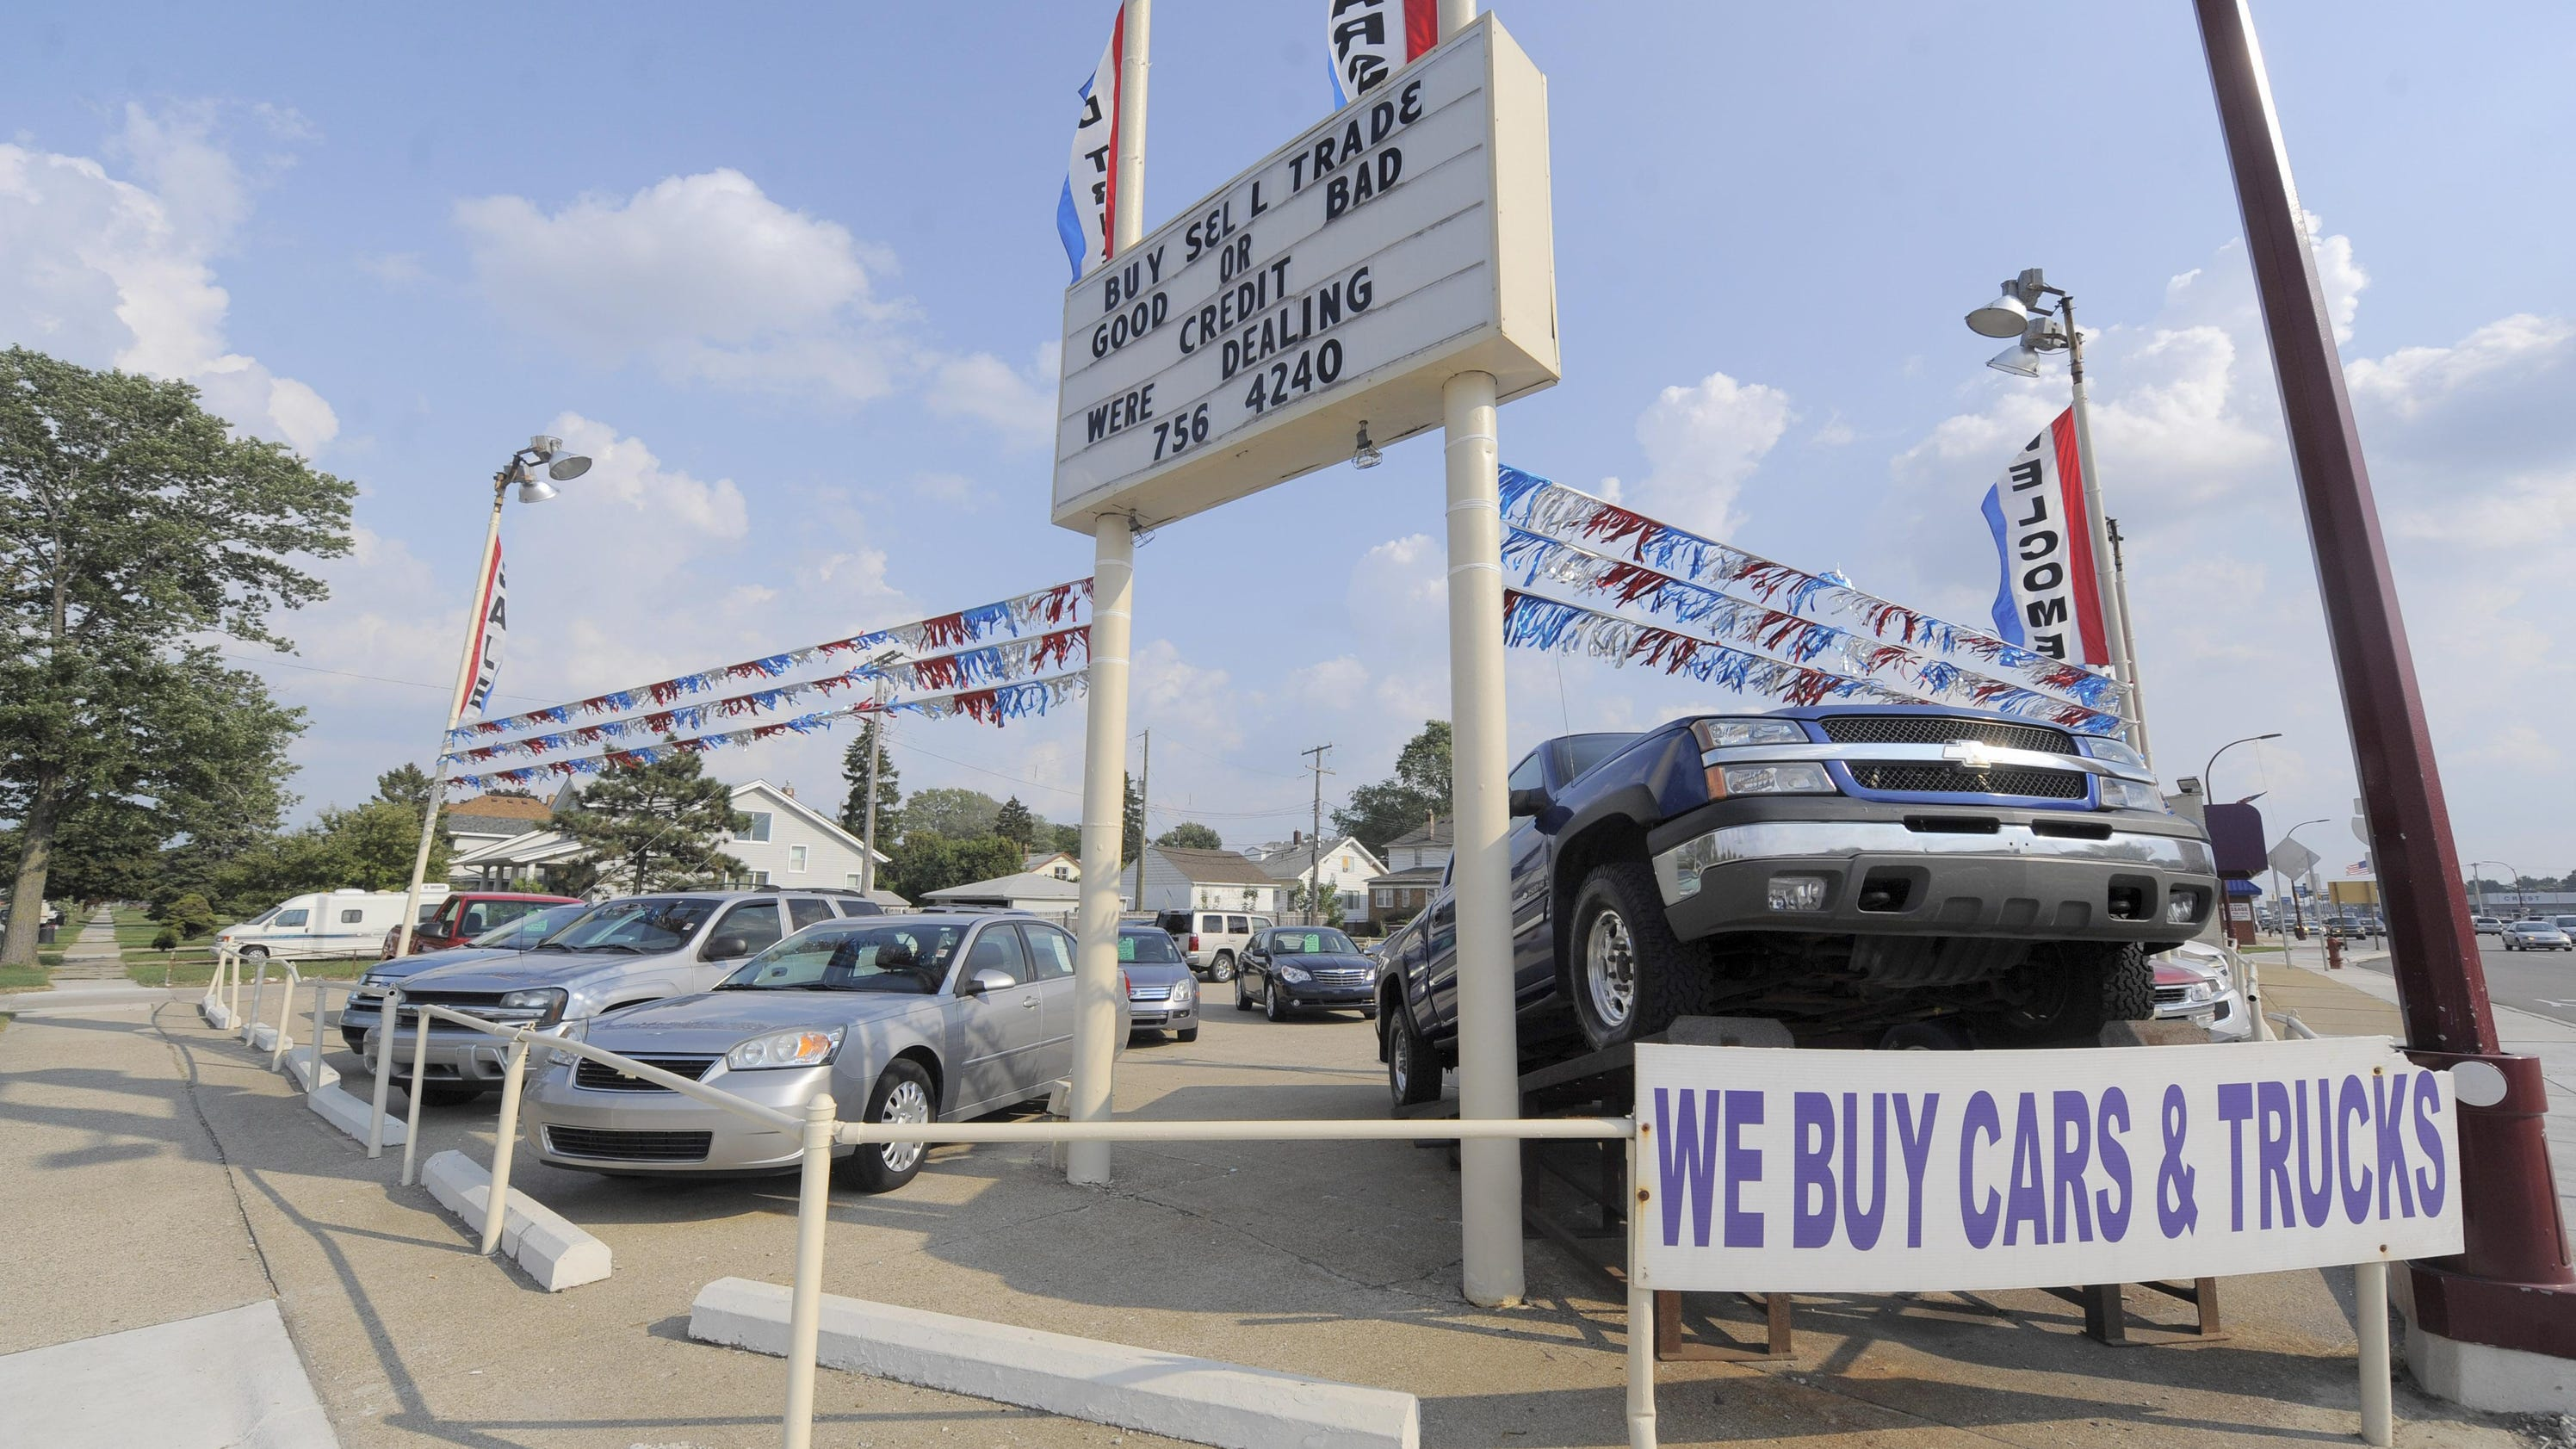 Glut of used cars drives down prices